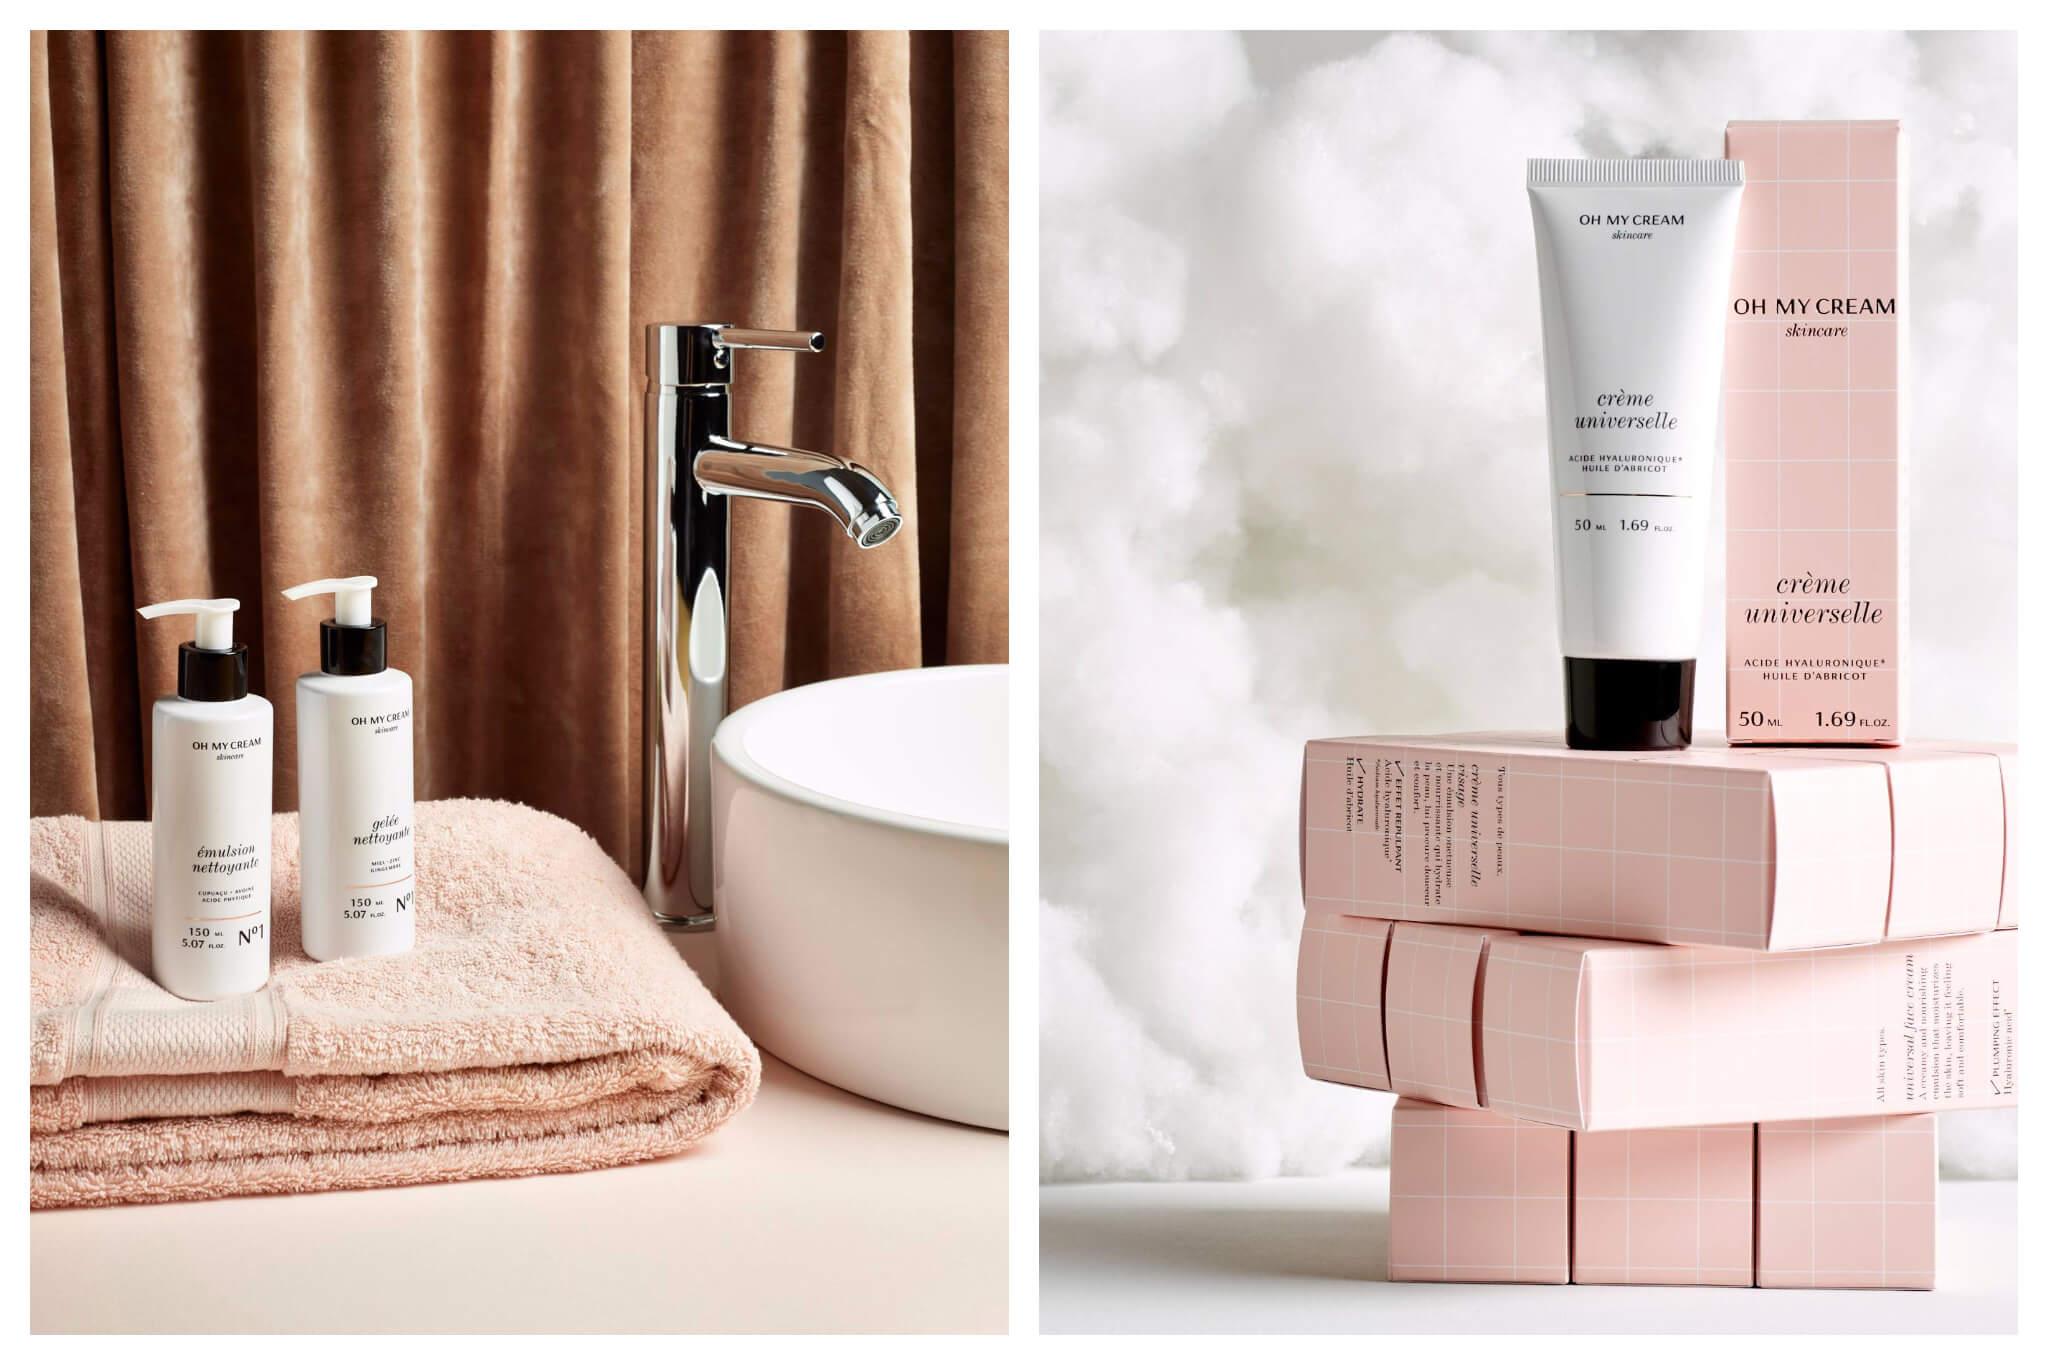 Left, two bottles of cream on a towel in a bathroom from Oh My Cream! brand in Paris. Right, stacked pink and while creams by Parisian brand to shop from home.